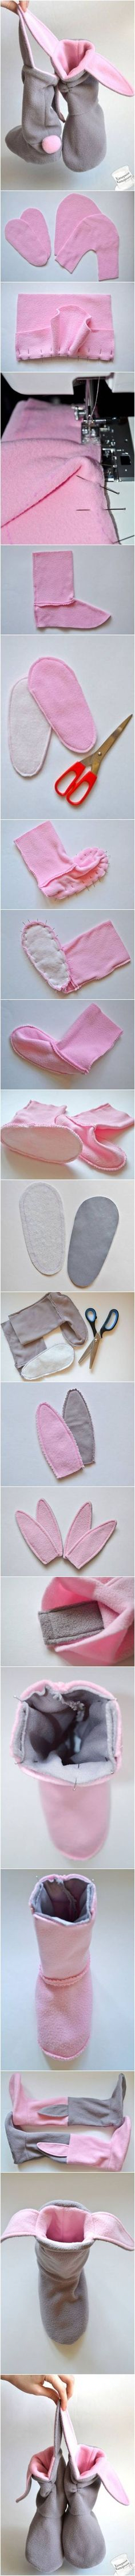 DIY Lovely Bunny Slippers #craft #sewing #slippers